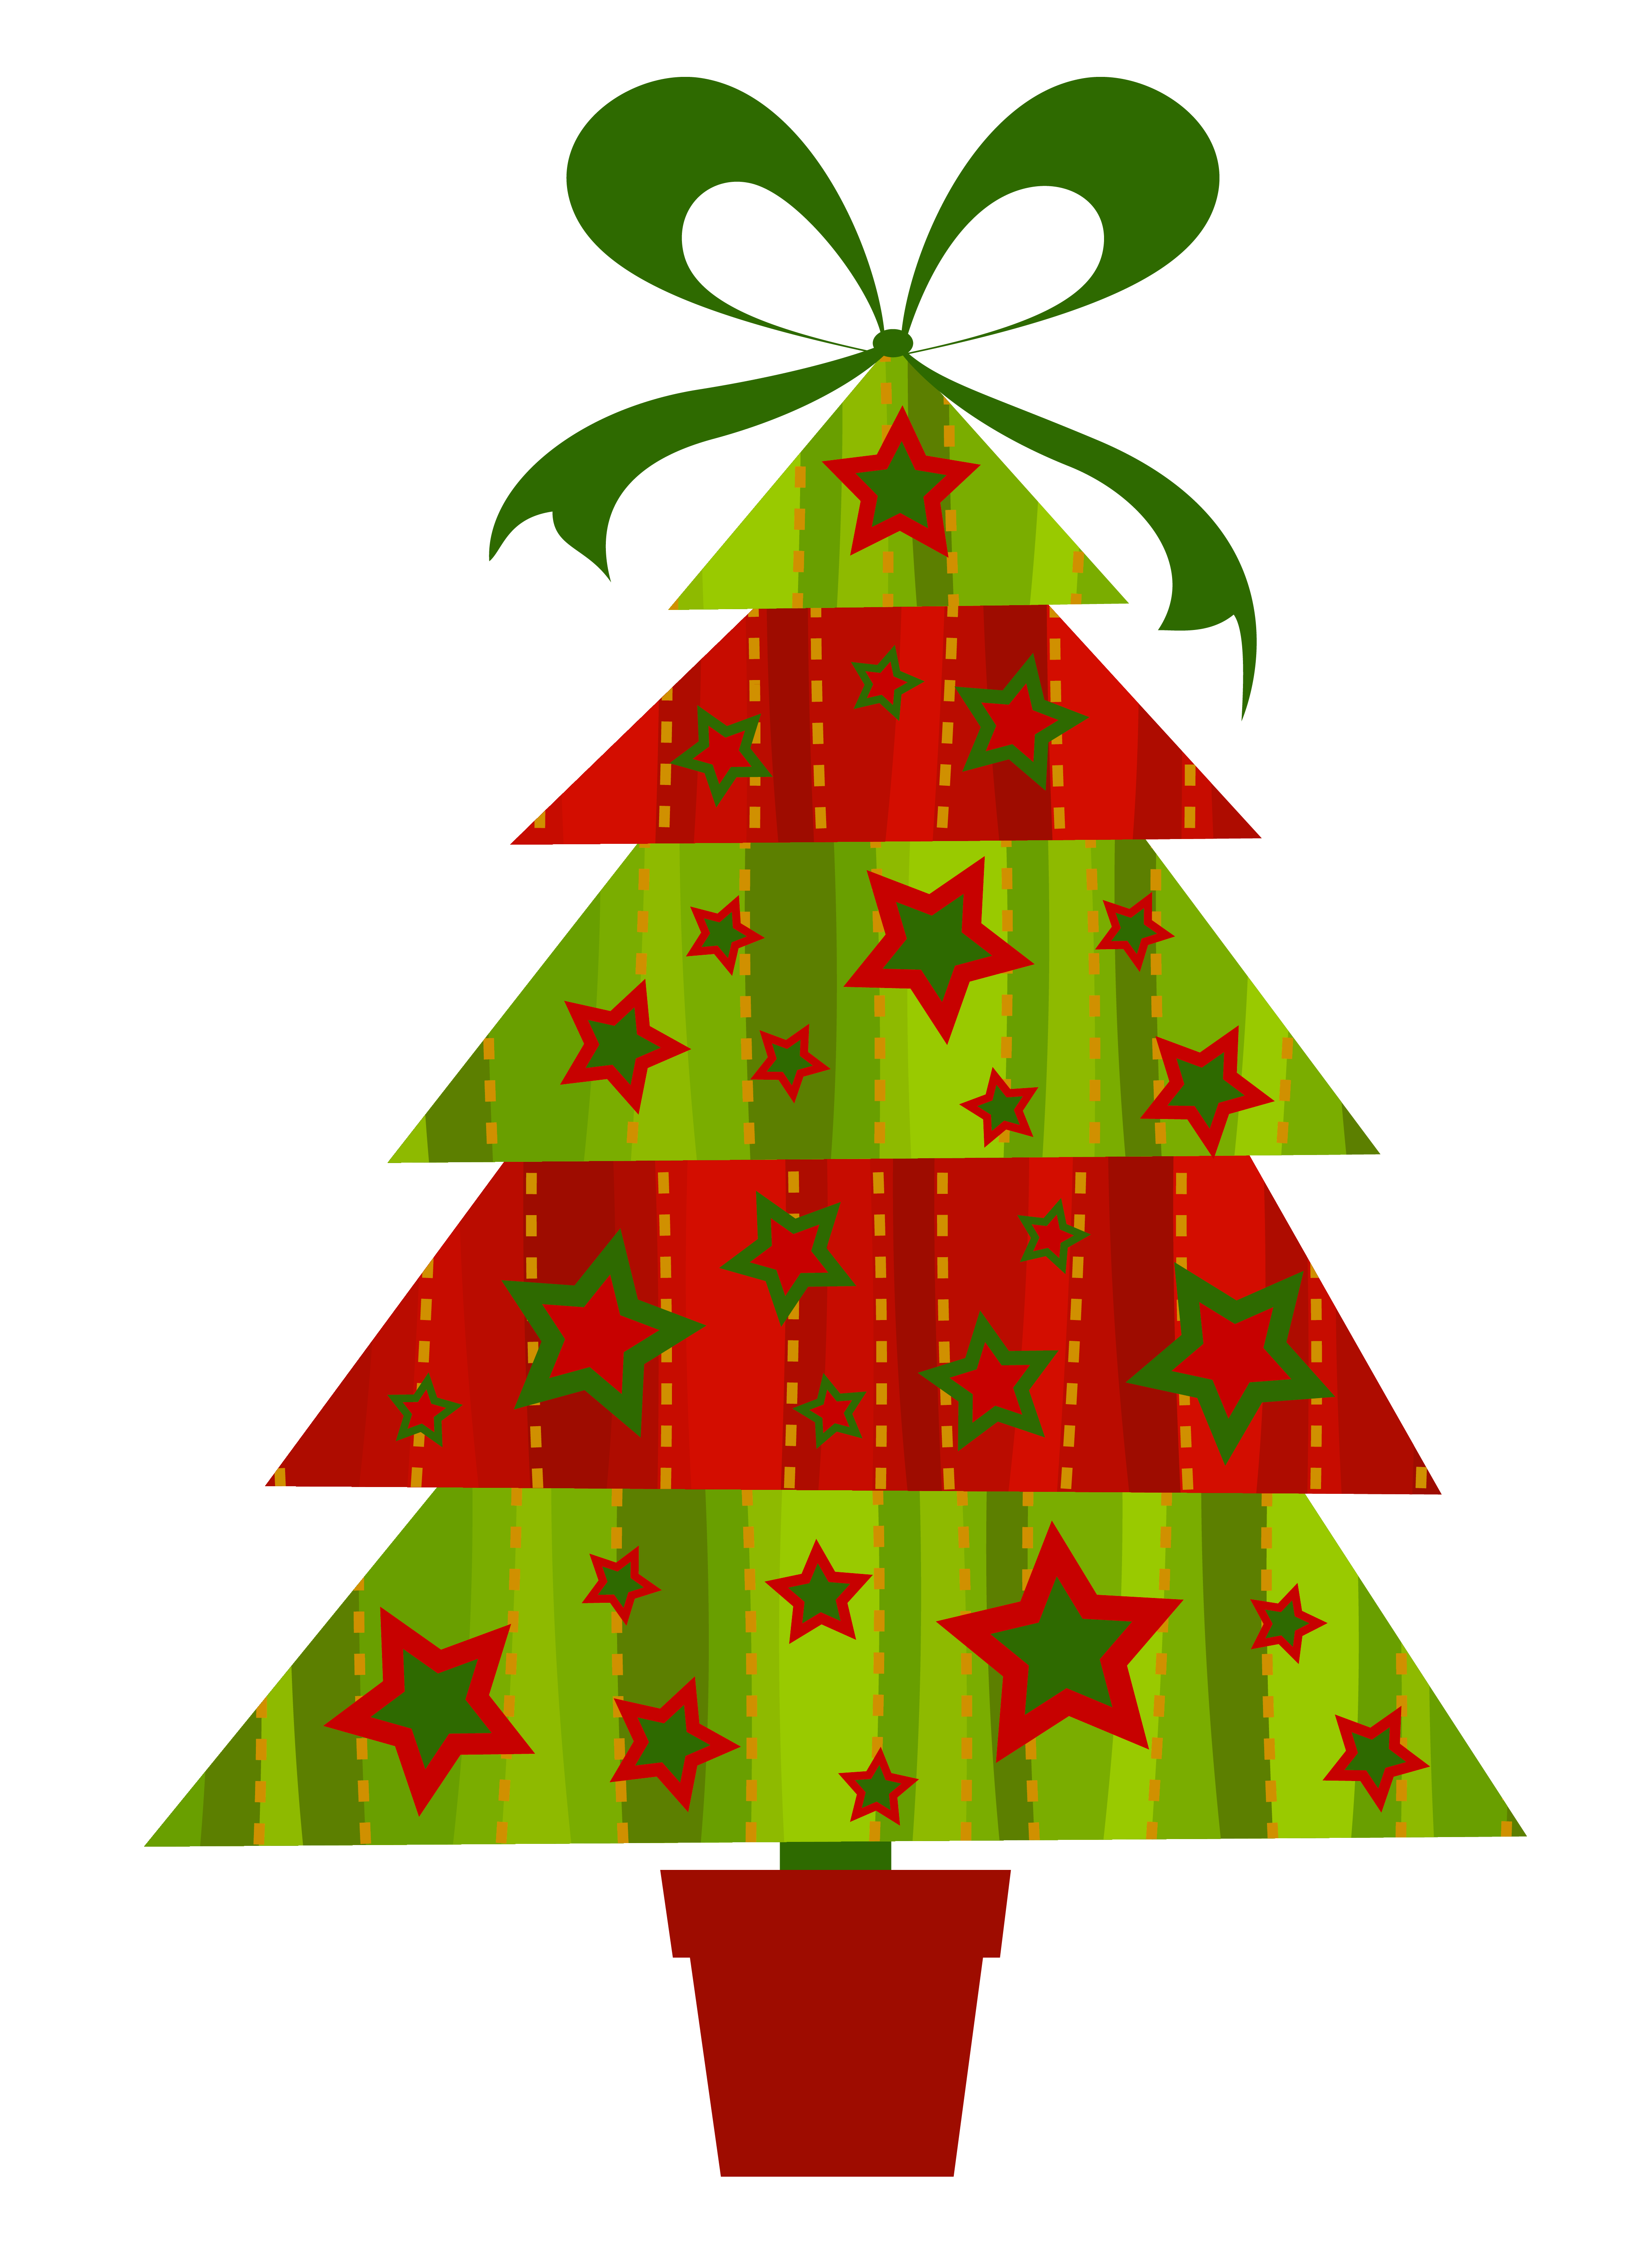 Car with christmas tree clipart image library library Christmas Village Clipart at GetDrawings.com | Free for personal use ... image library library